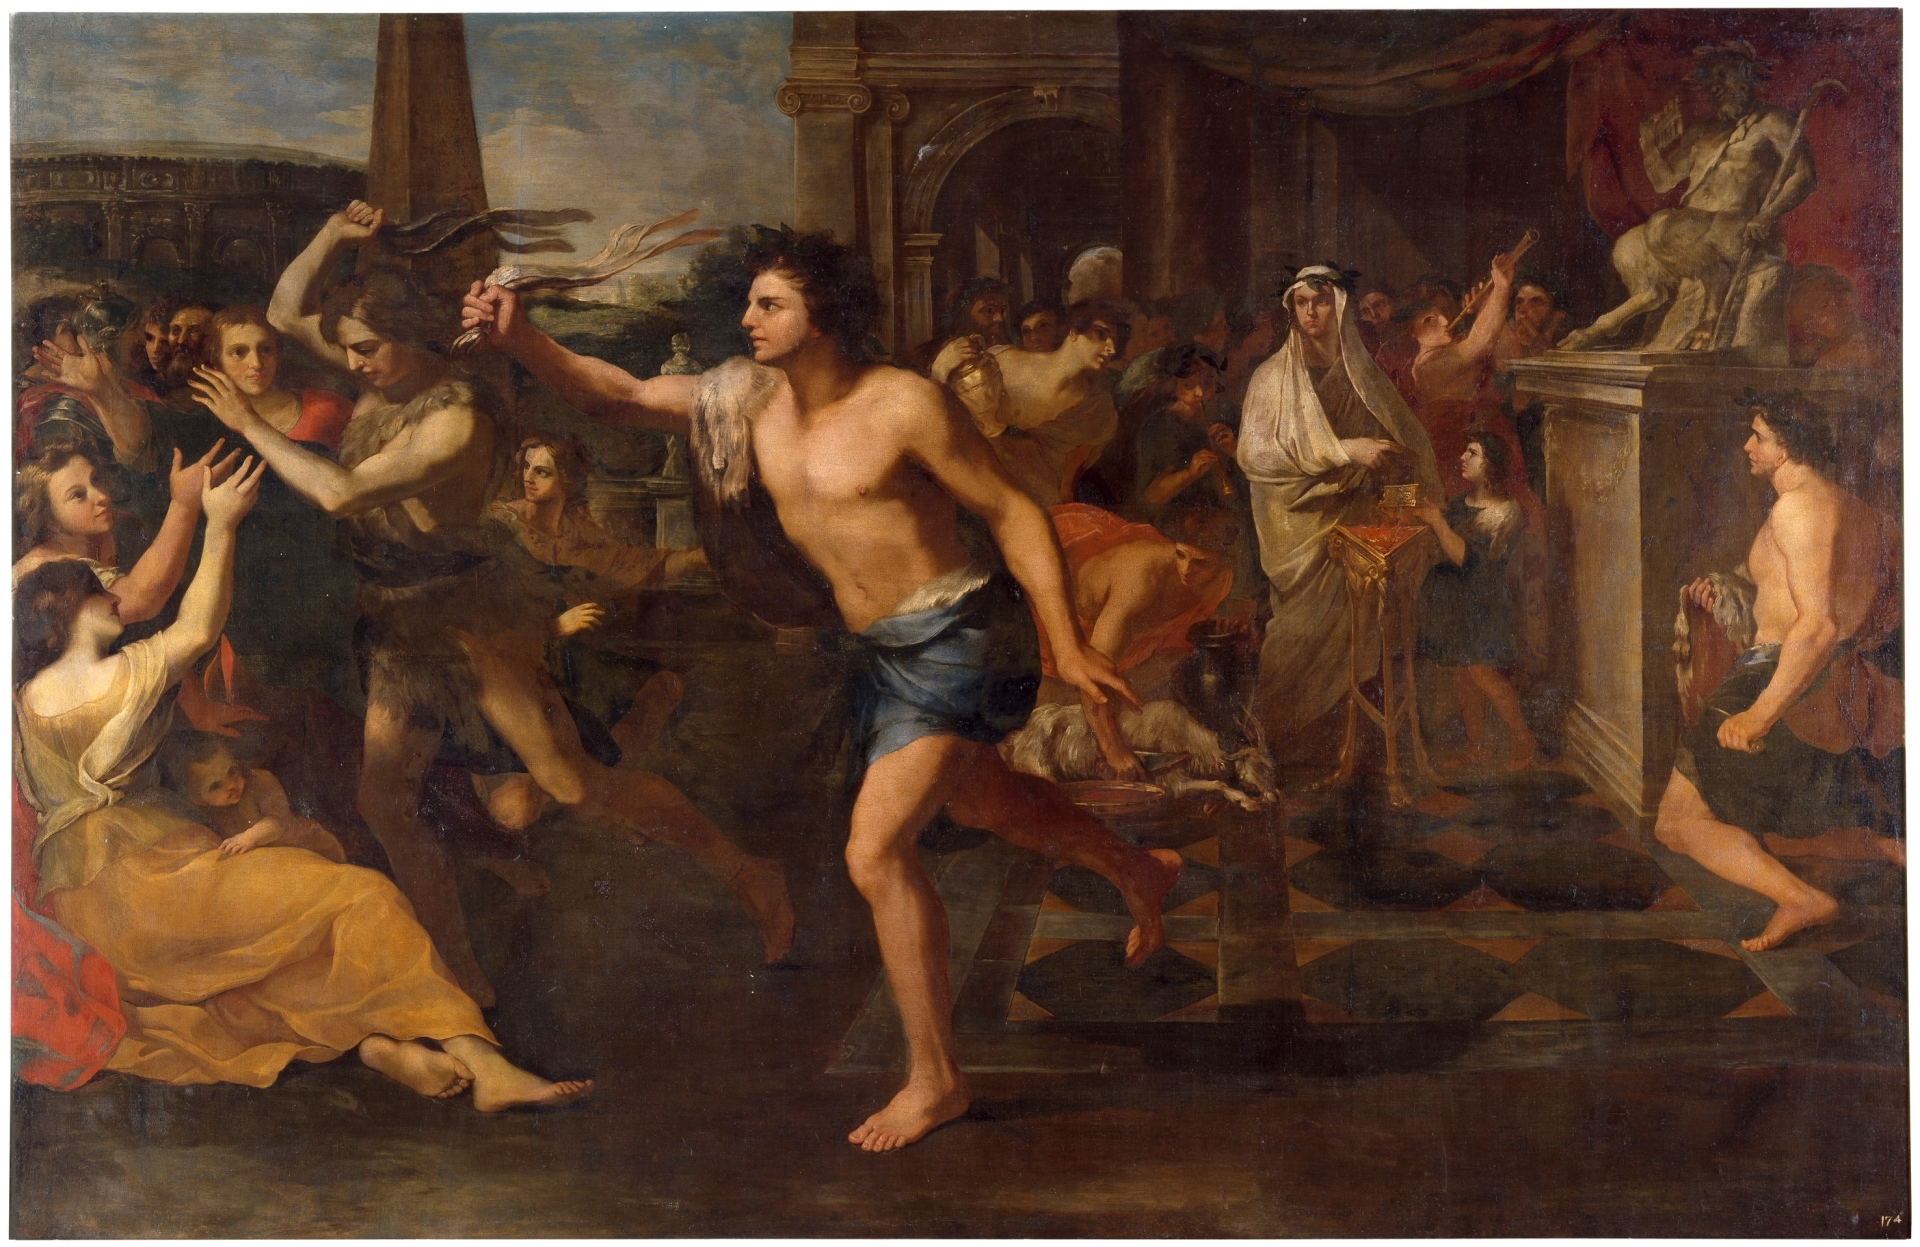 Youths whipping women for the ancient festival of Lupercalia